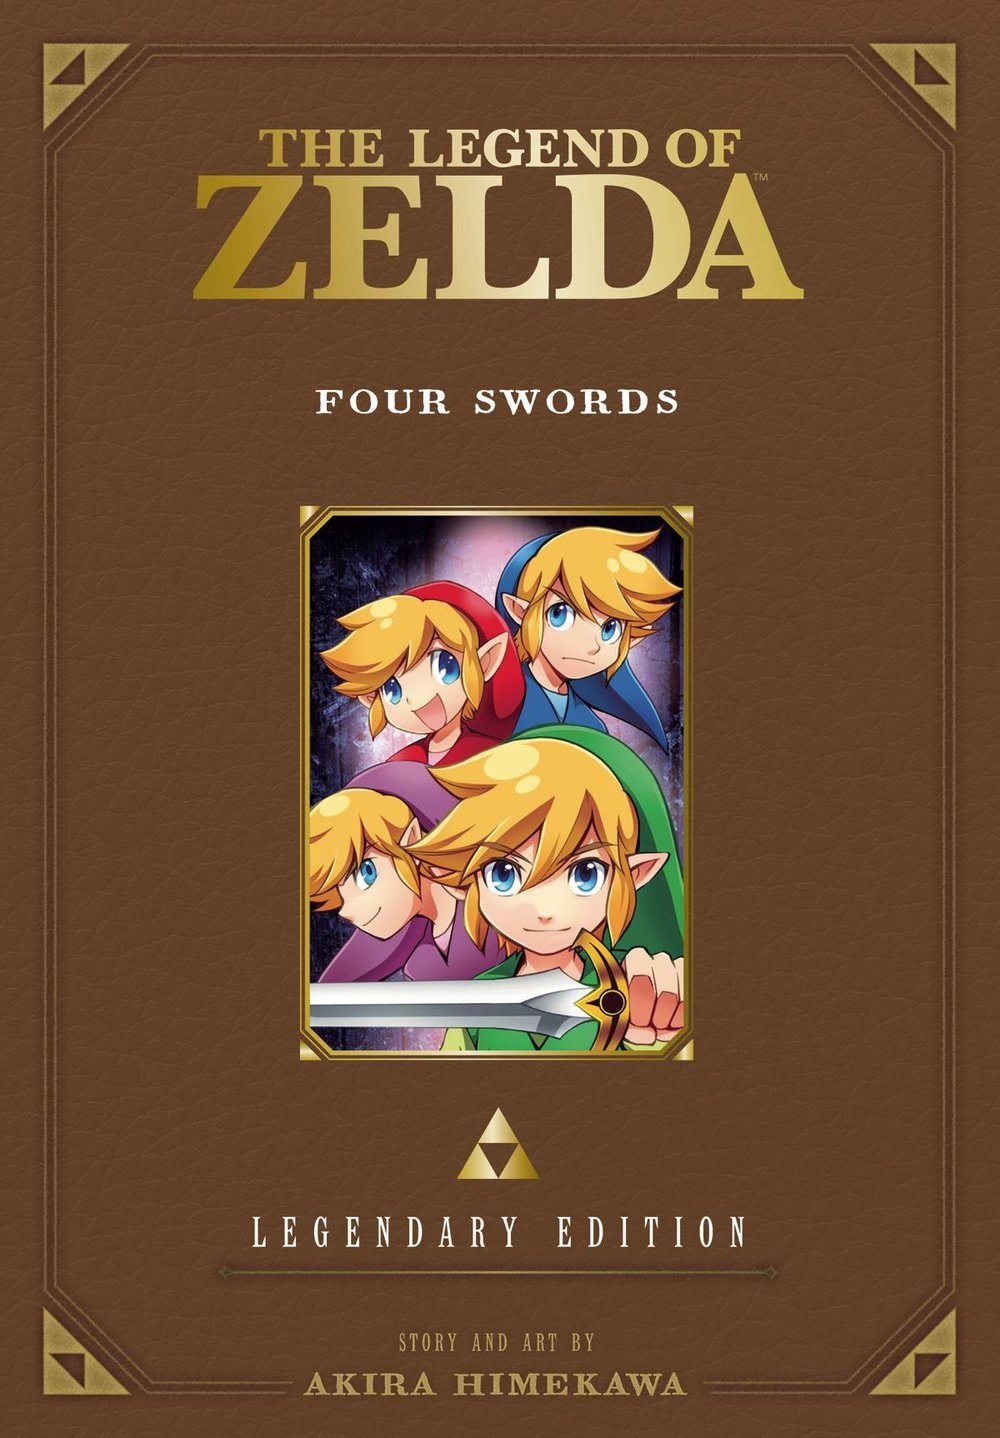 LEGEND OF ZELDA LEGENDARY ED GN 5 FOUR SWORDS.jpg